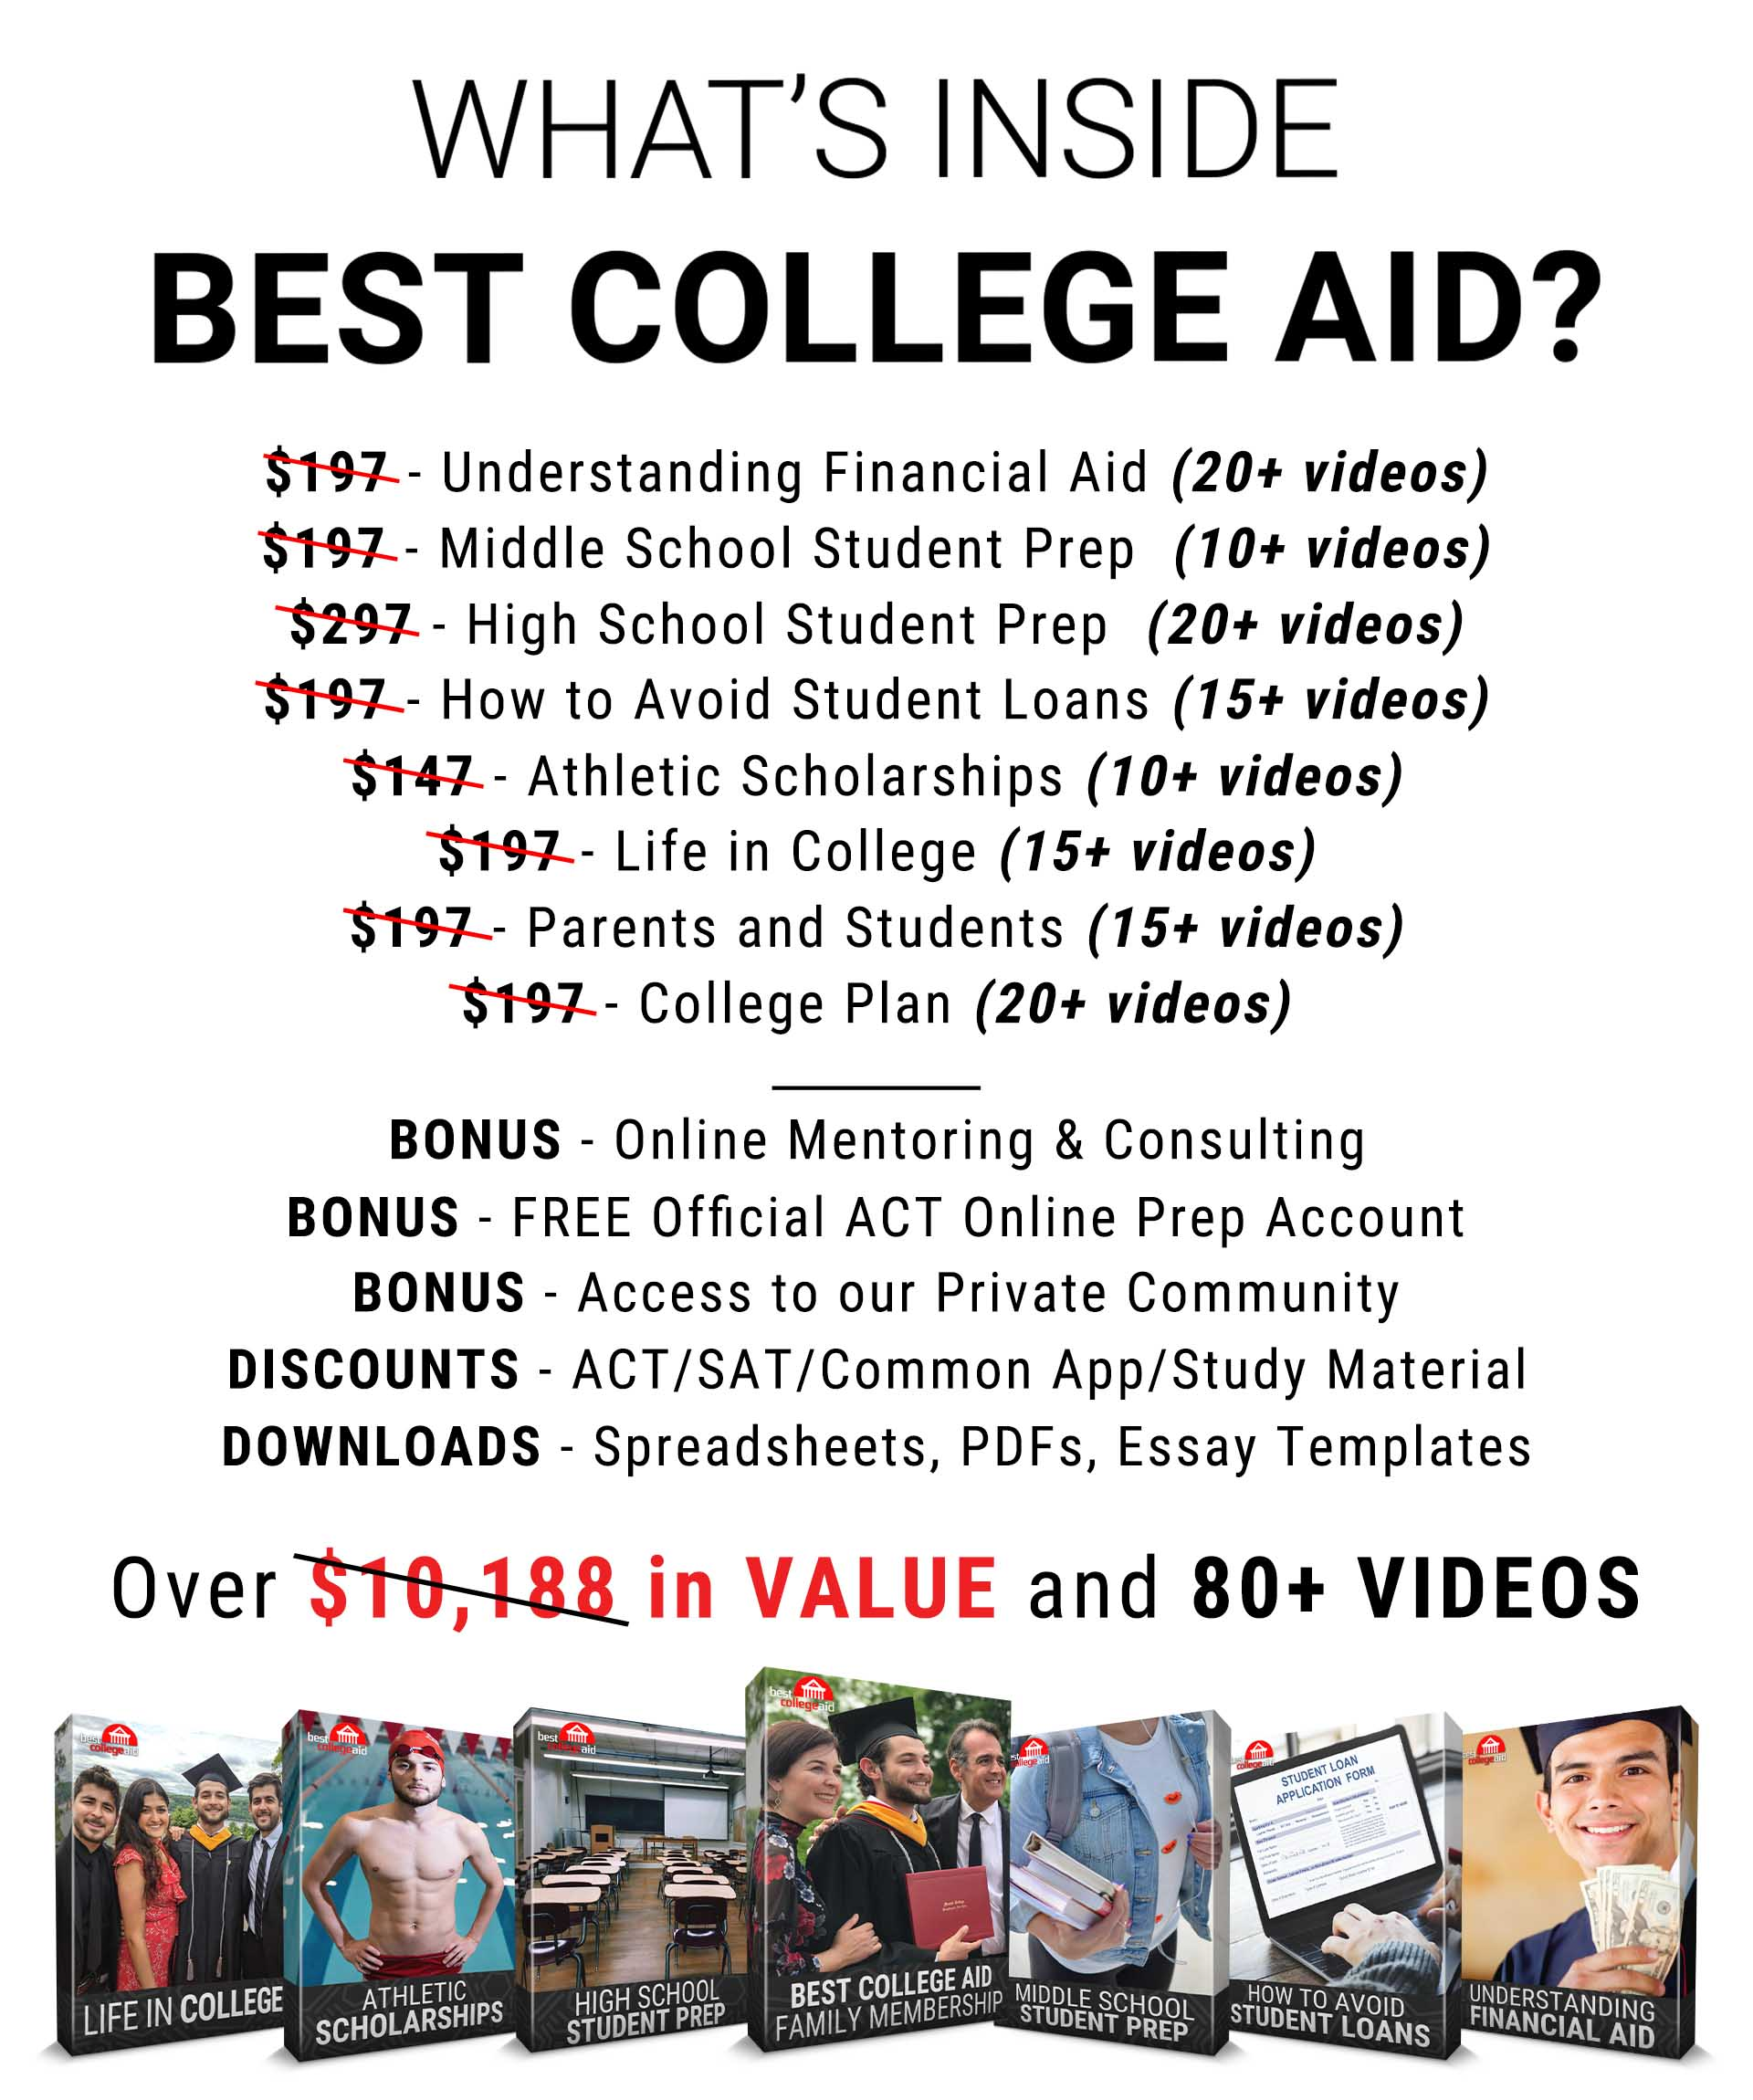 What is inside Best College Aid